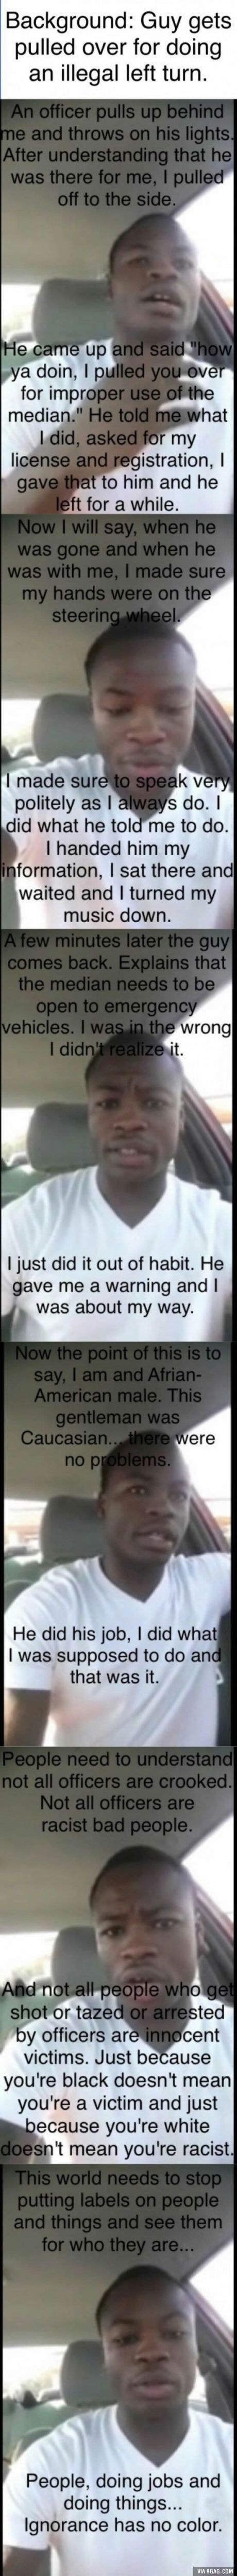 Black man gets pulled over by white cop